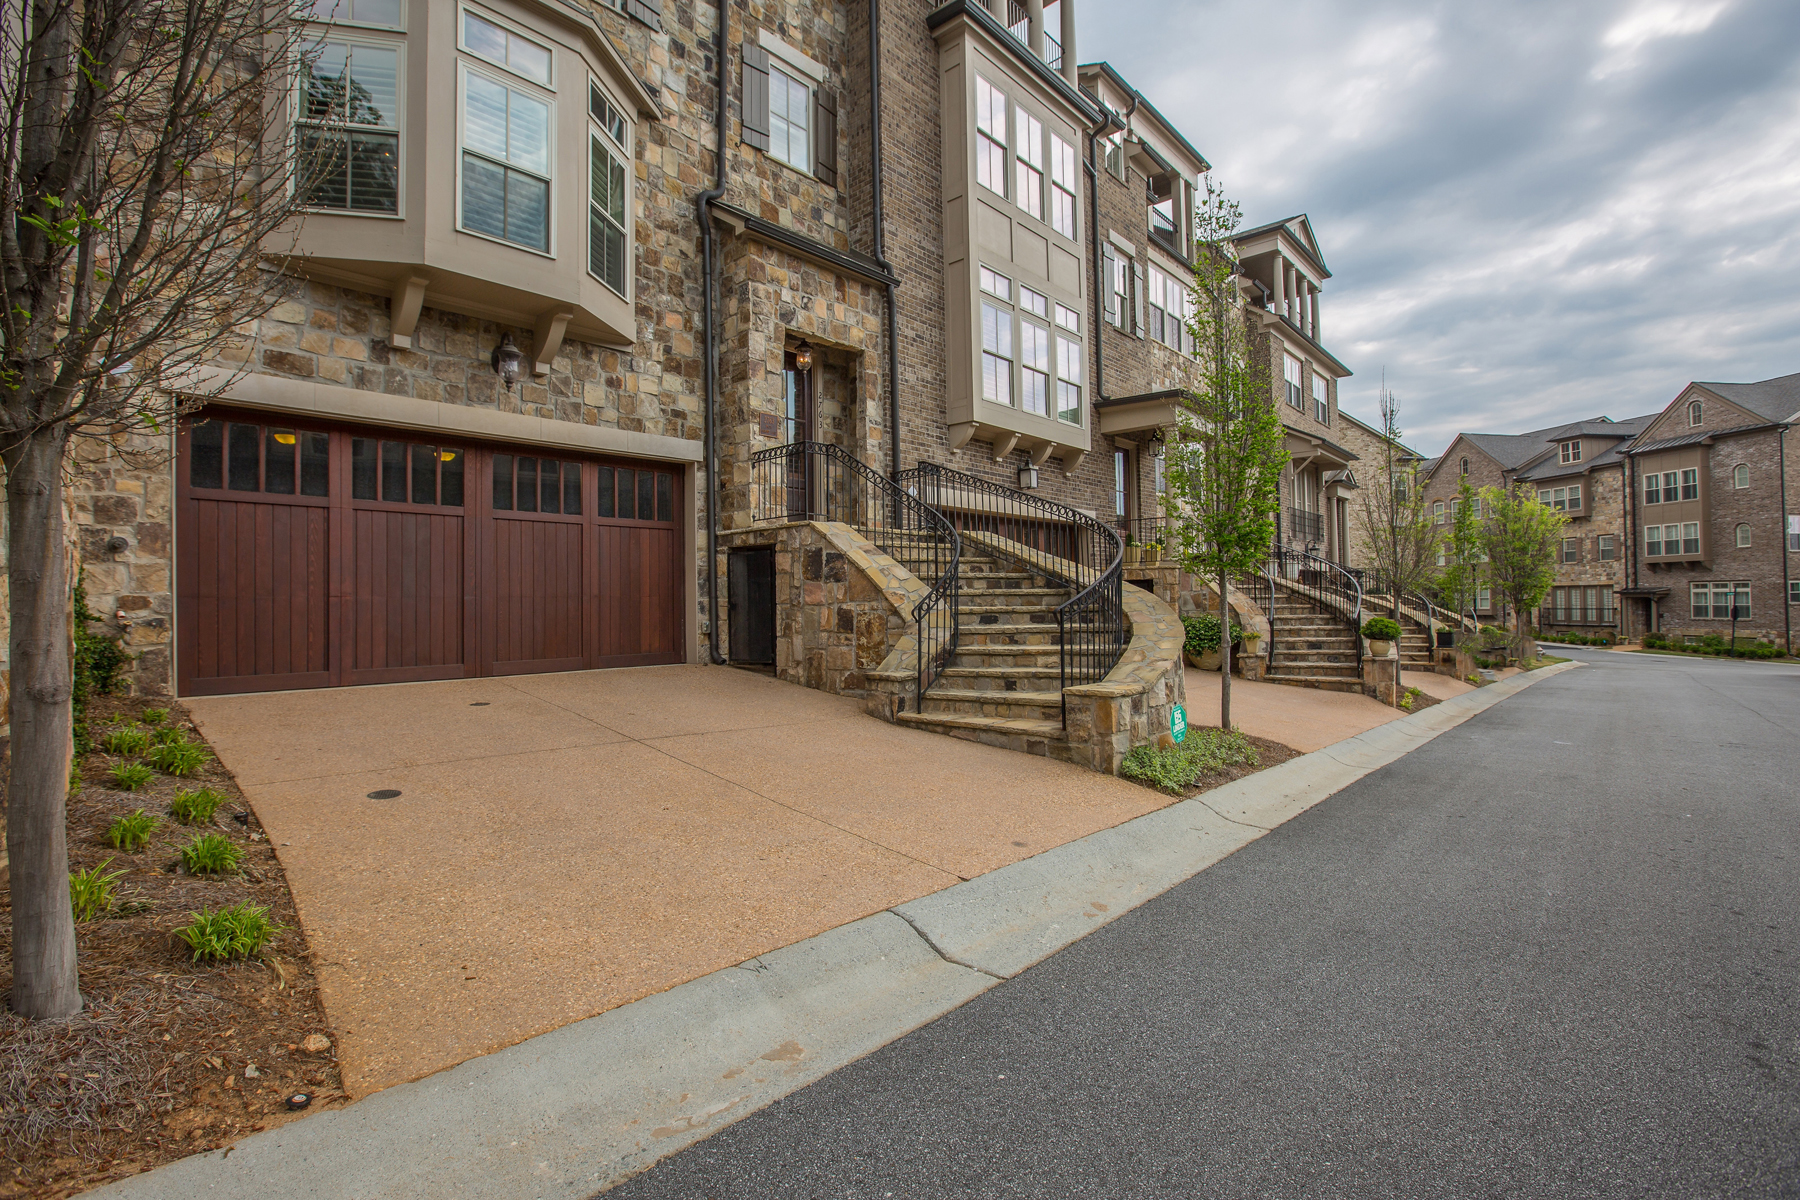 Townhouse for Sale at Rarely Available Four Level Townhome With Elevator 2763 Paces Lookout Lane SE Atlanta, Georgia, 30339 United States